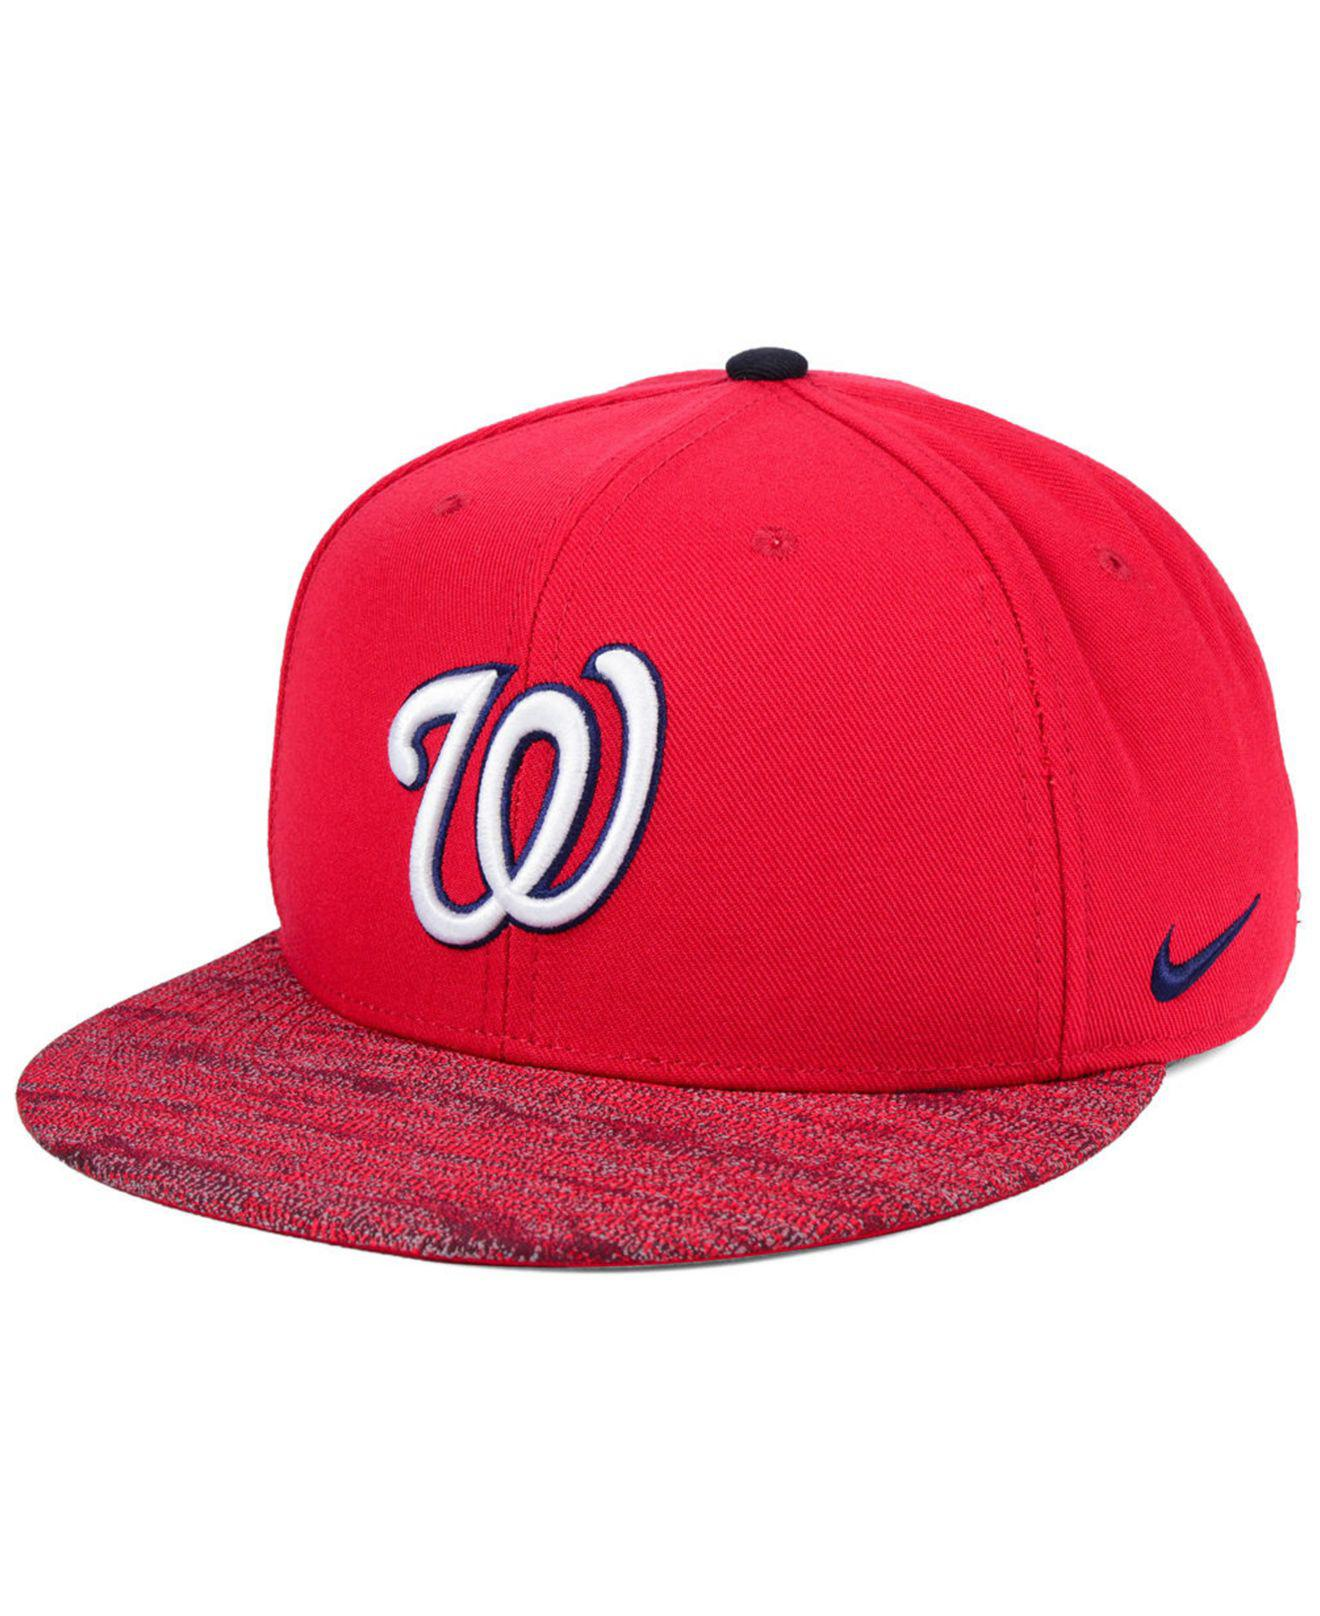 new style 683f6 c8211 ... promo code for nike. mens red washington nationals reverse new day snapback  cap 1ab04 ff1c4